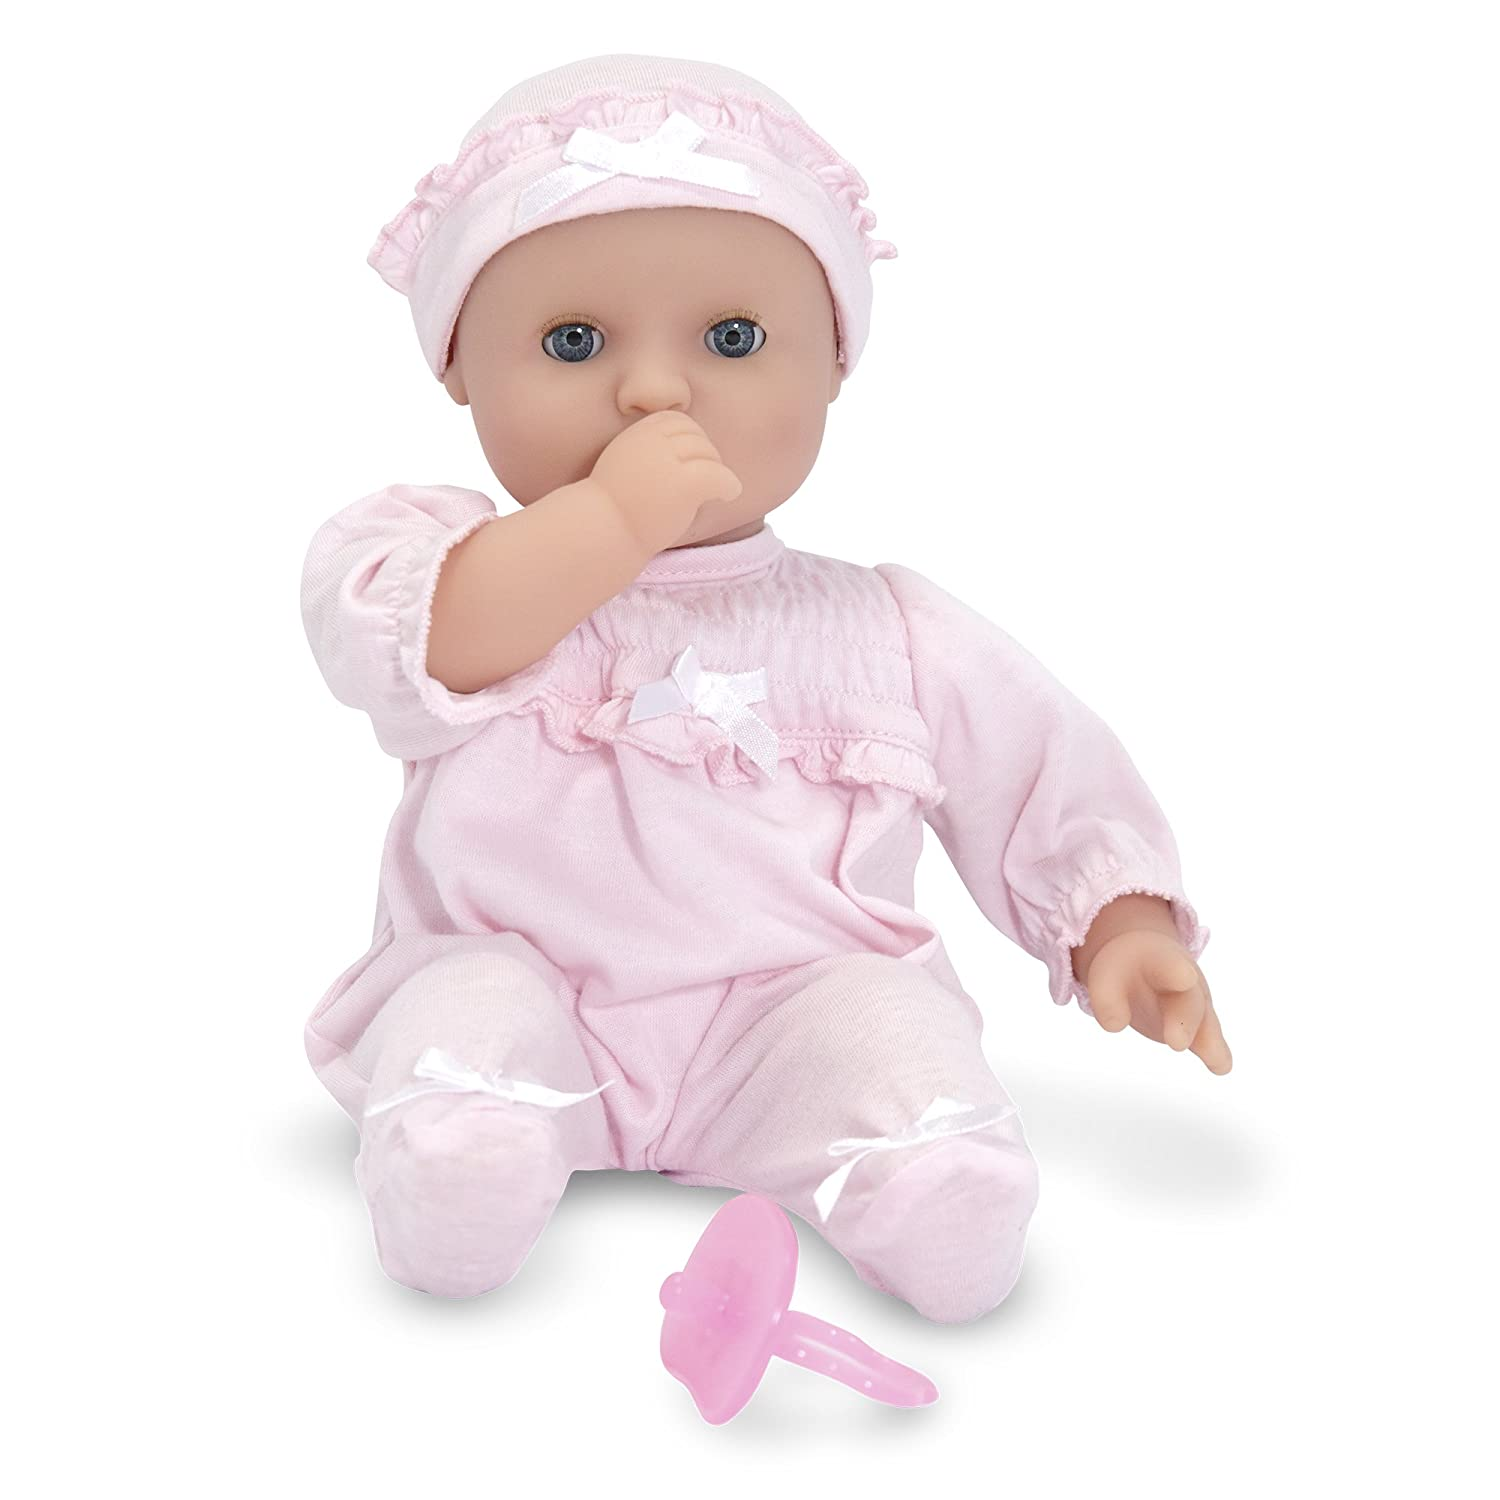 Melissa /& Doug Mine to Love Jenna 12-Inch Soft Body Baby Doll 12.5 H x 7.2 W x 4.7 L Wipe-Clean Arms /& Legs Romper and Hat Included